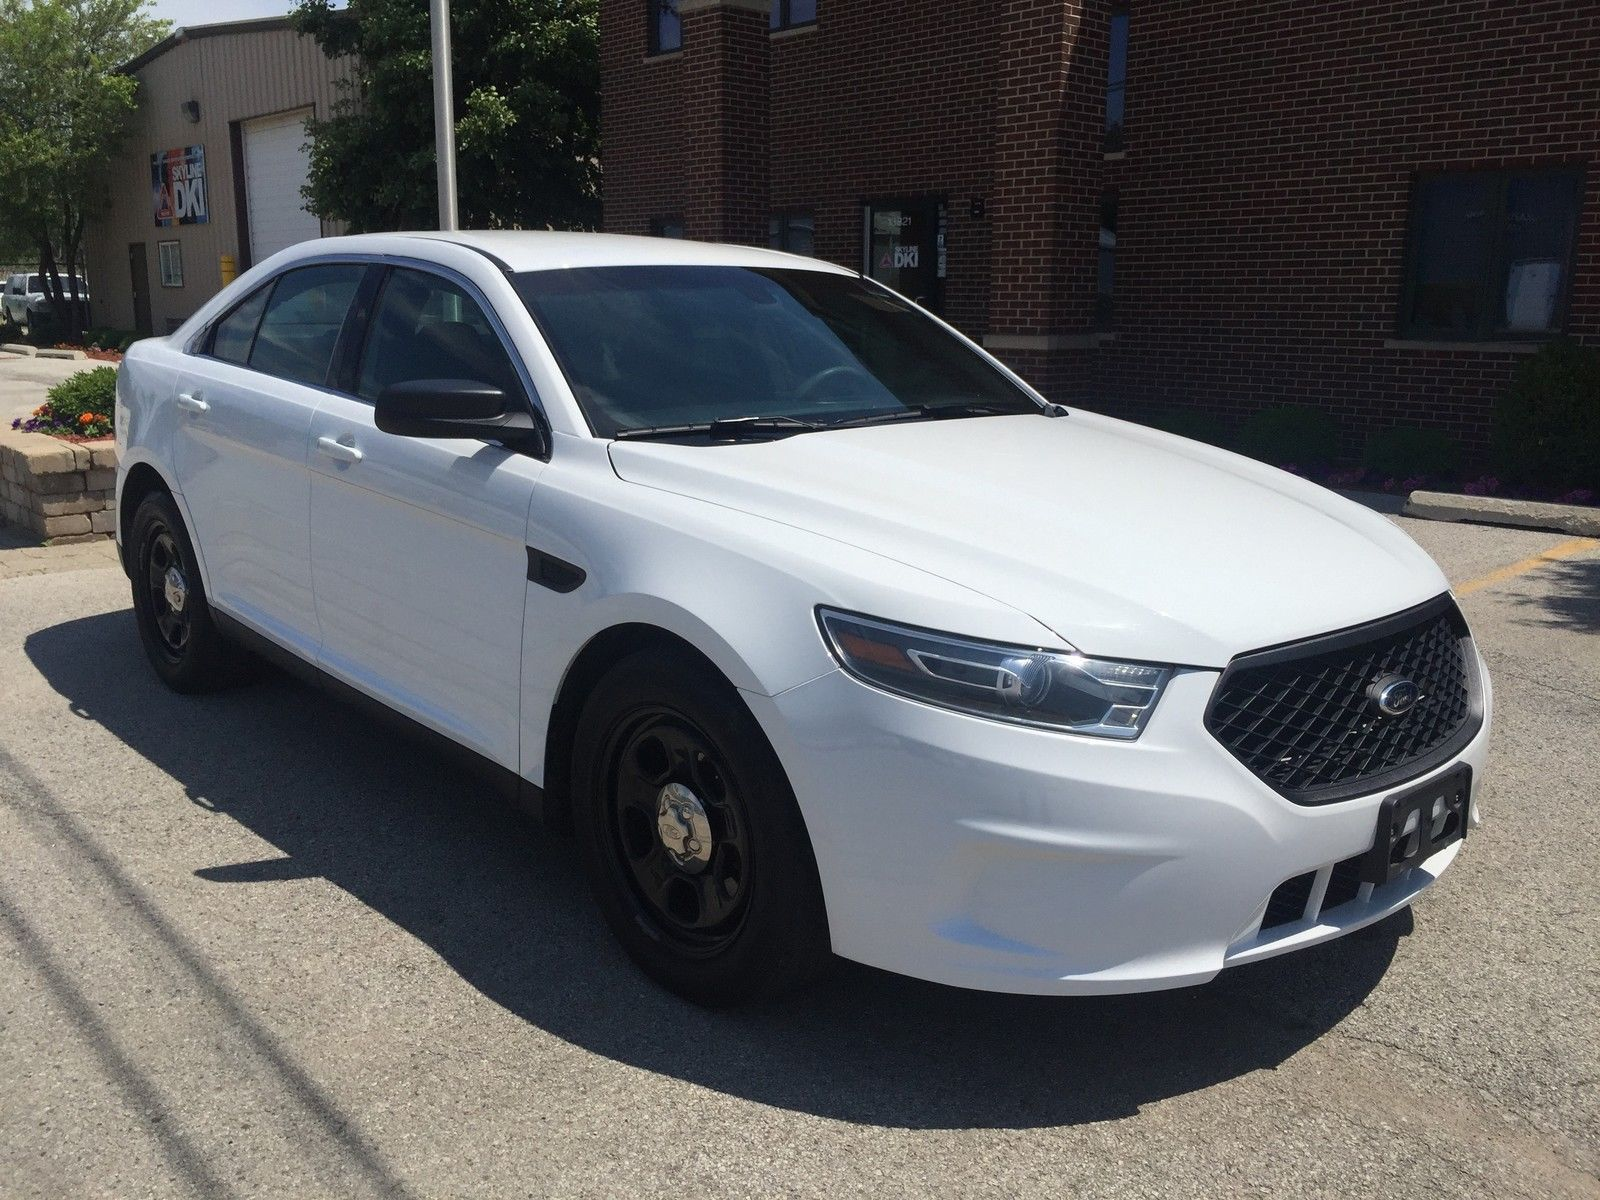 Car Brand Auctioned Ford Taurus Police Interceptor 2014 Car Model Ford Taurus Police Interceptor Very Clean Awd Only 31 K Mile Car Brand Car Model Interceptor